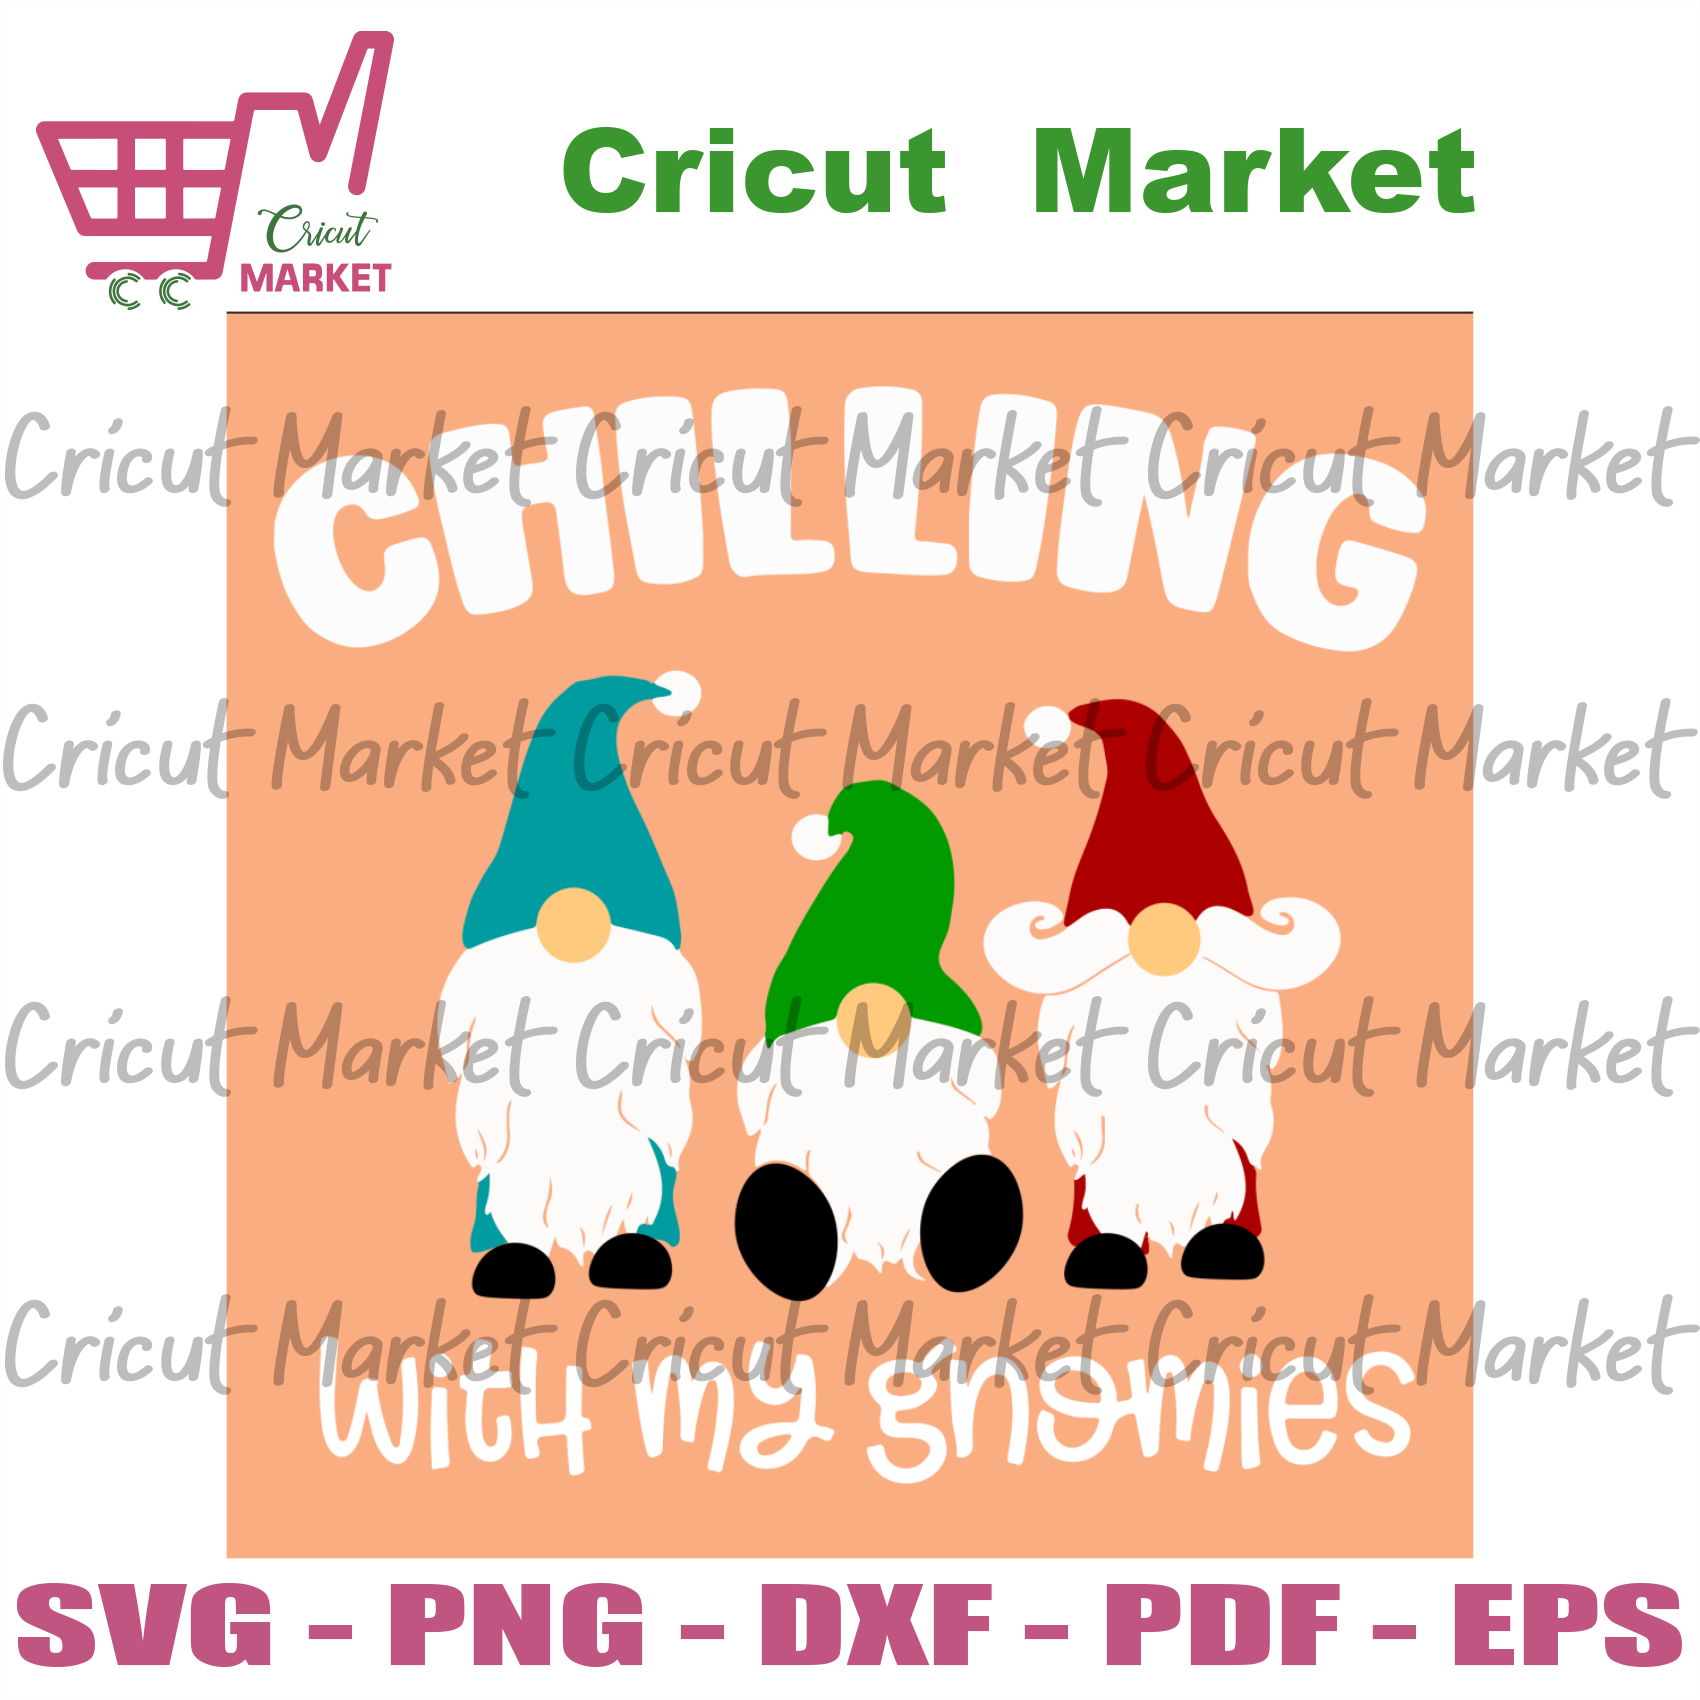 Chillin with my gnomies, christmas svg, chill svg, chilling svg, gnomies svg, gnomy svg, gnomies squad svg, my gnomies svg, xmas svg, christmas gnomy, gnome svg, gnomos svg, christmas gnomy -